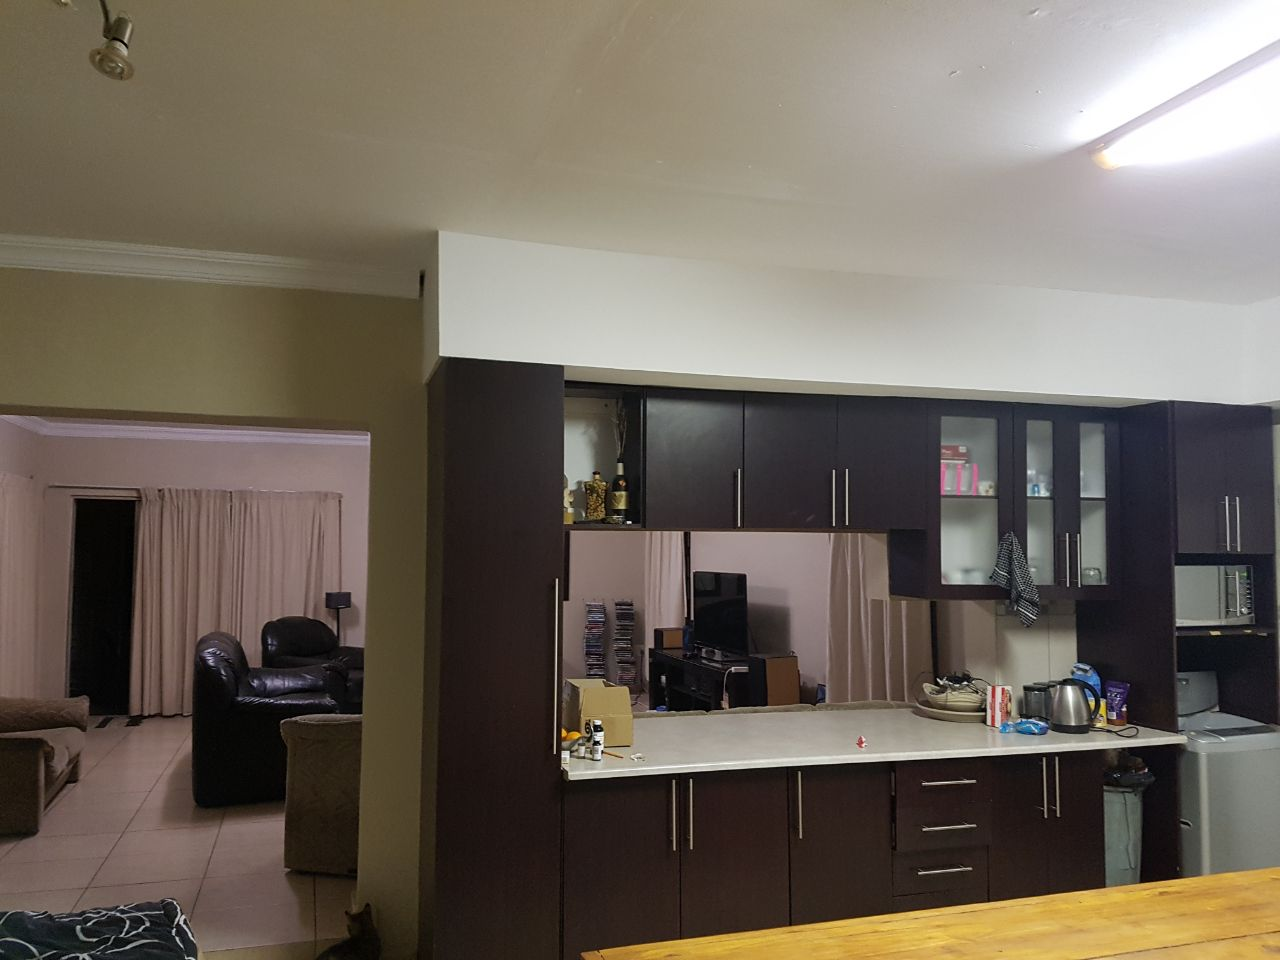 3 Bedroom House for sale in Mountain View ENT0040118 : photo#6